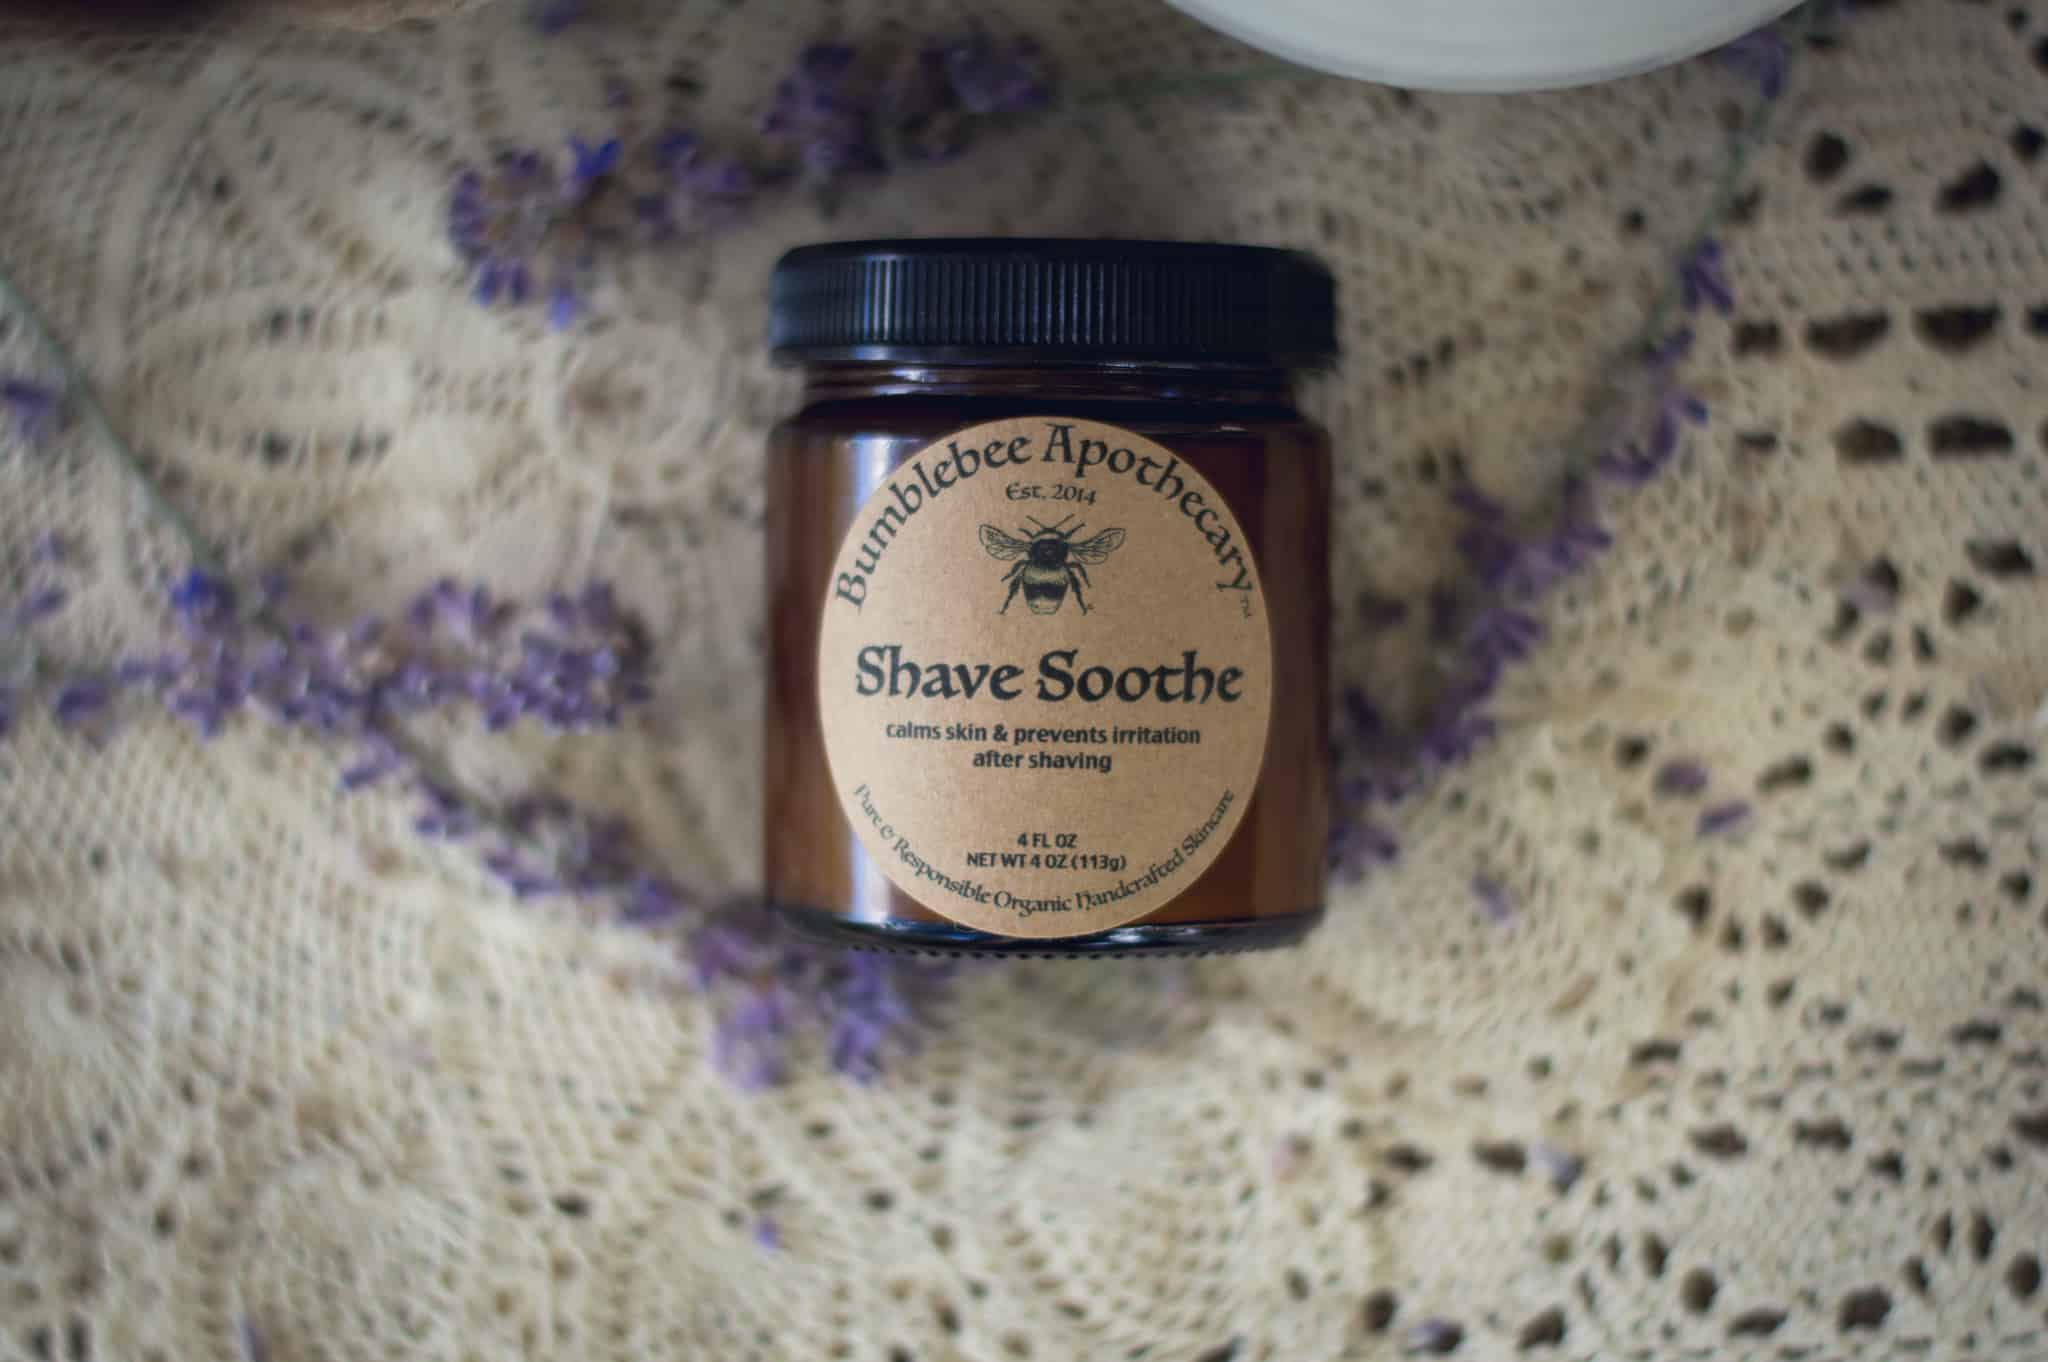 After shave lotion recipe DIY